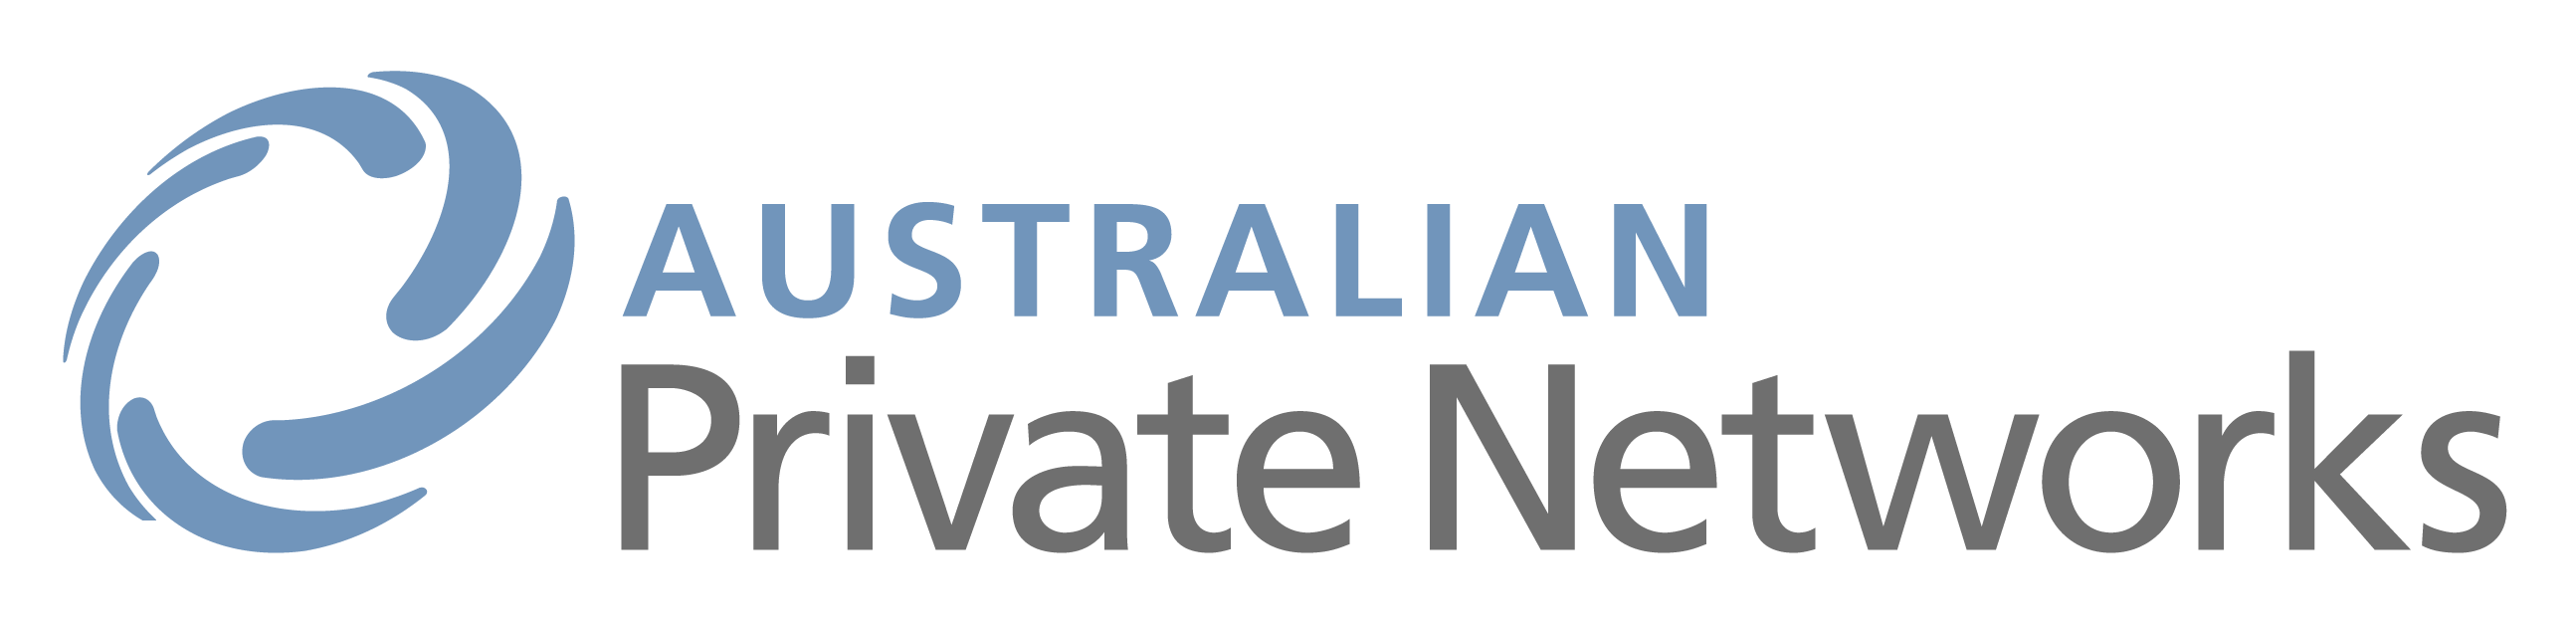 Australian Private Networks